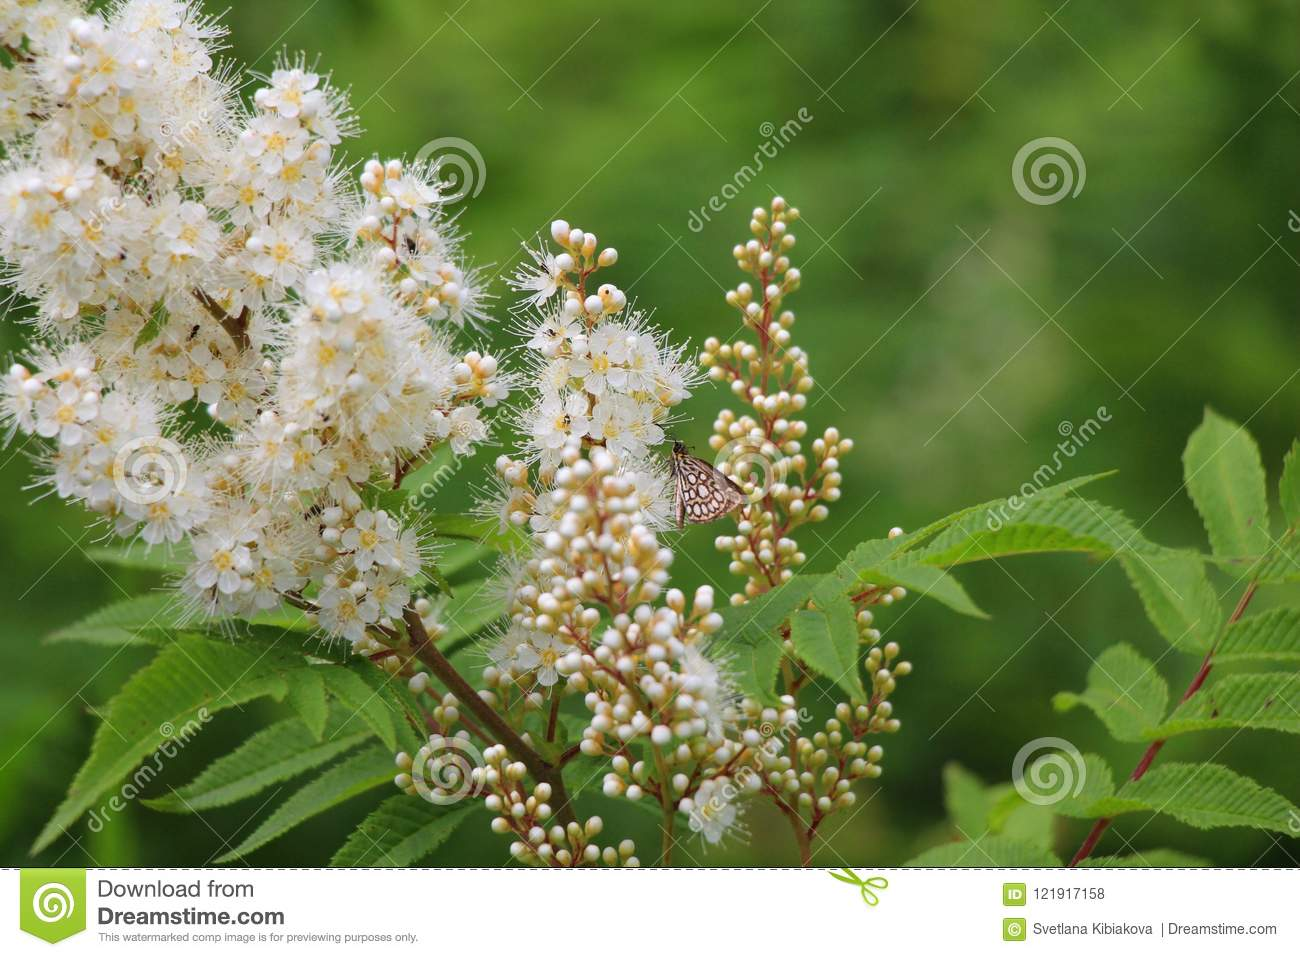 Sprigs With White Fluffy Flowers And Green Leaves Stock Photo